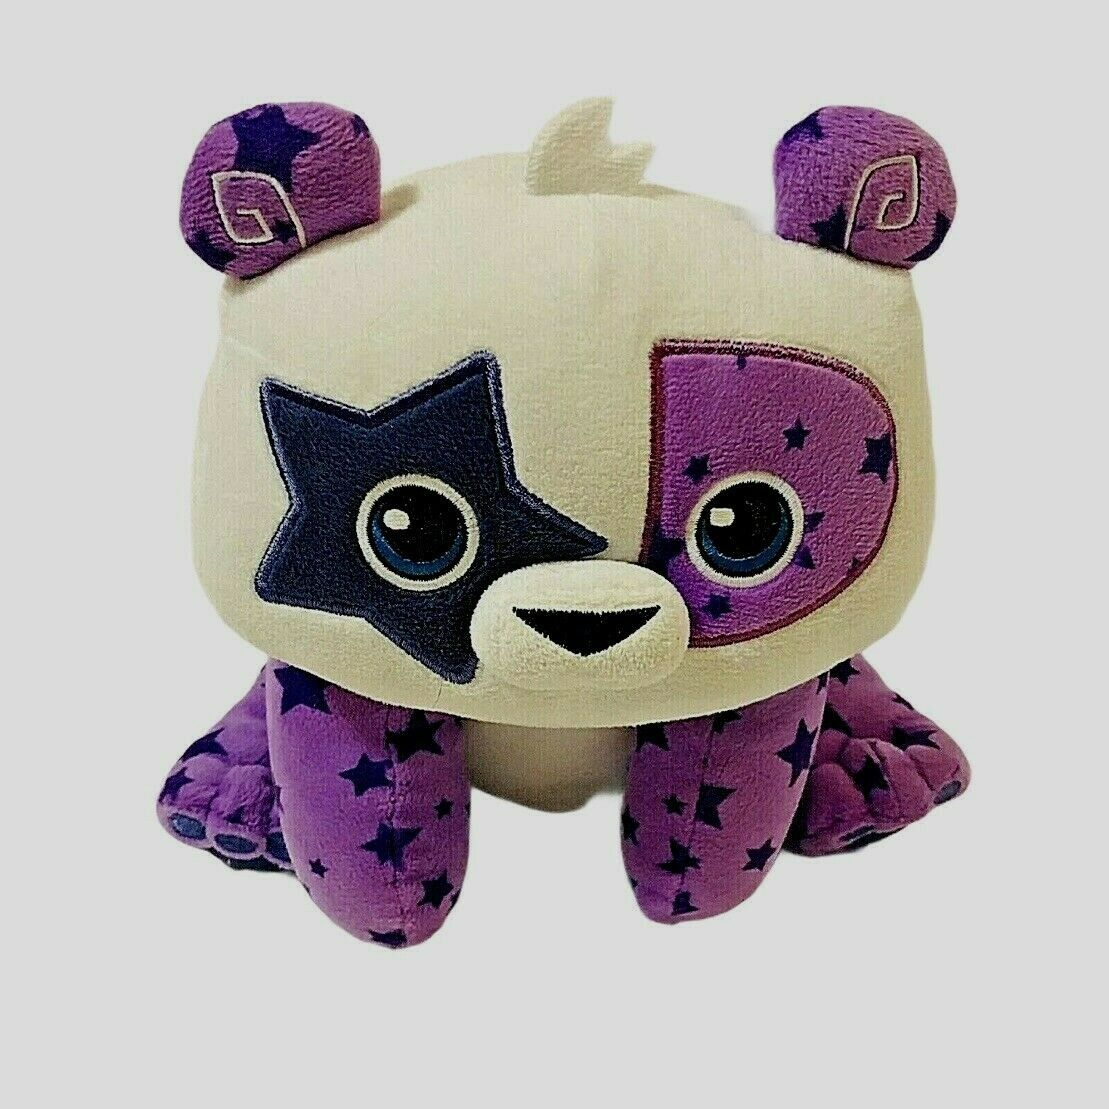 Primary image for Animal Jam Posh Panda Plush White Purple Stuffed Animal Stars Toys Panda Bear